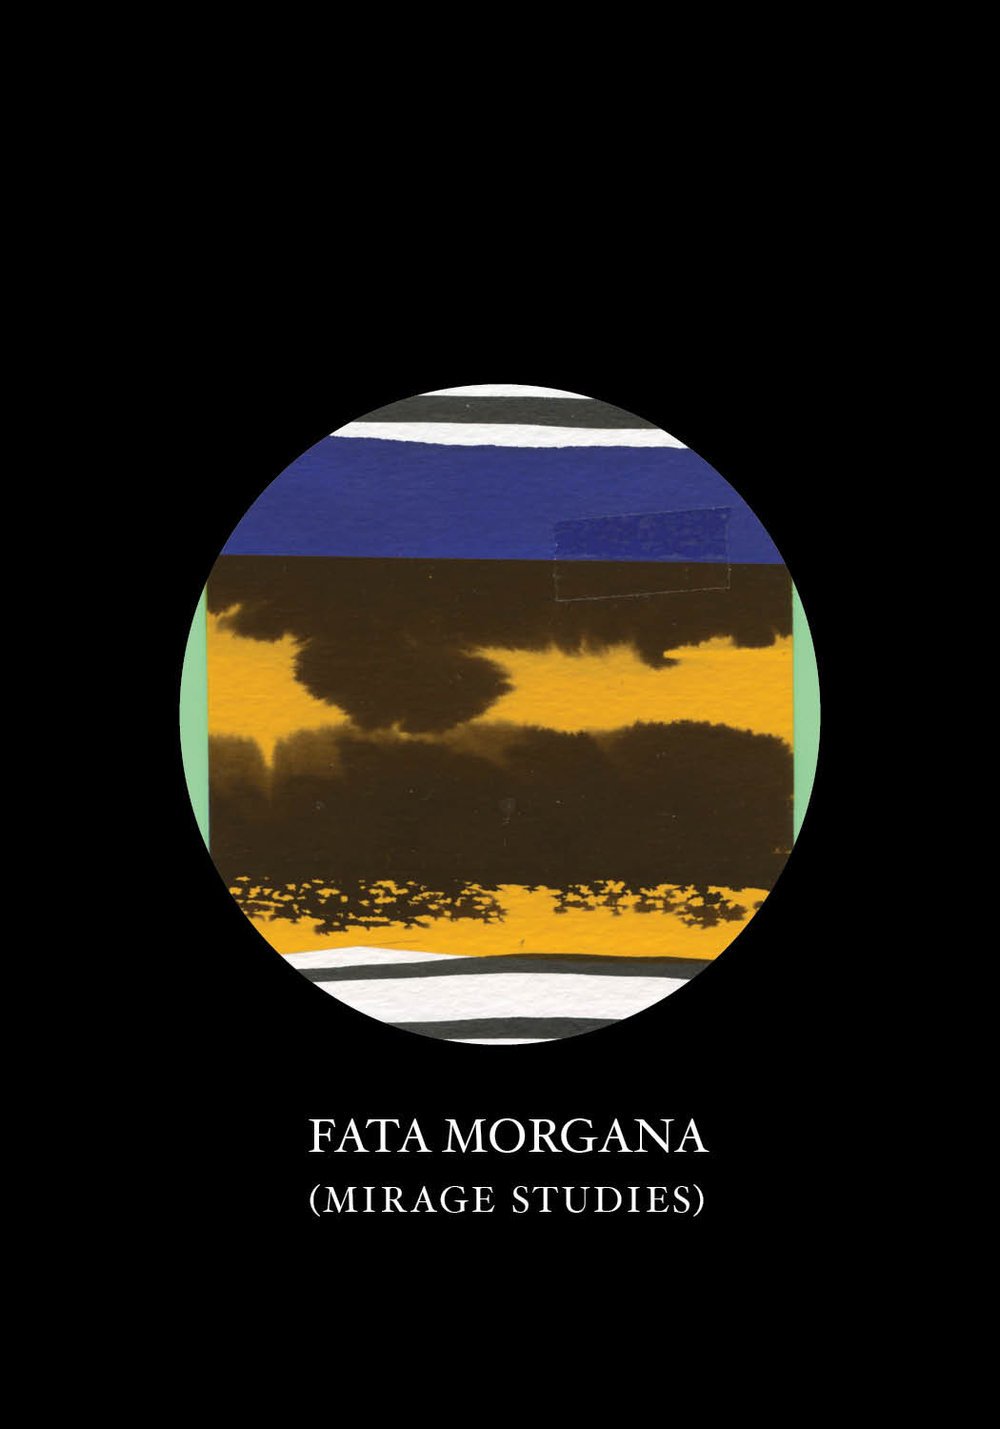 Fata Morgana (Mirage Studies)  Christian Sampson